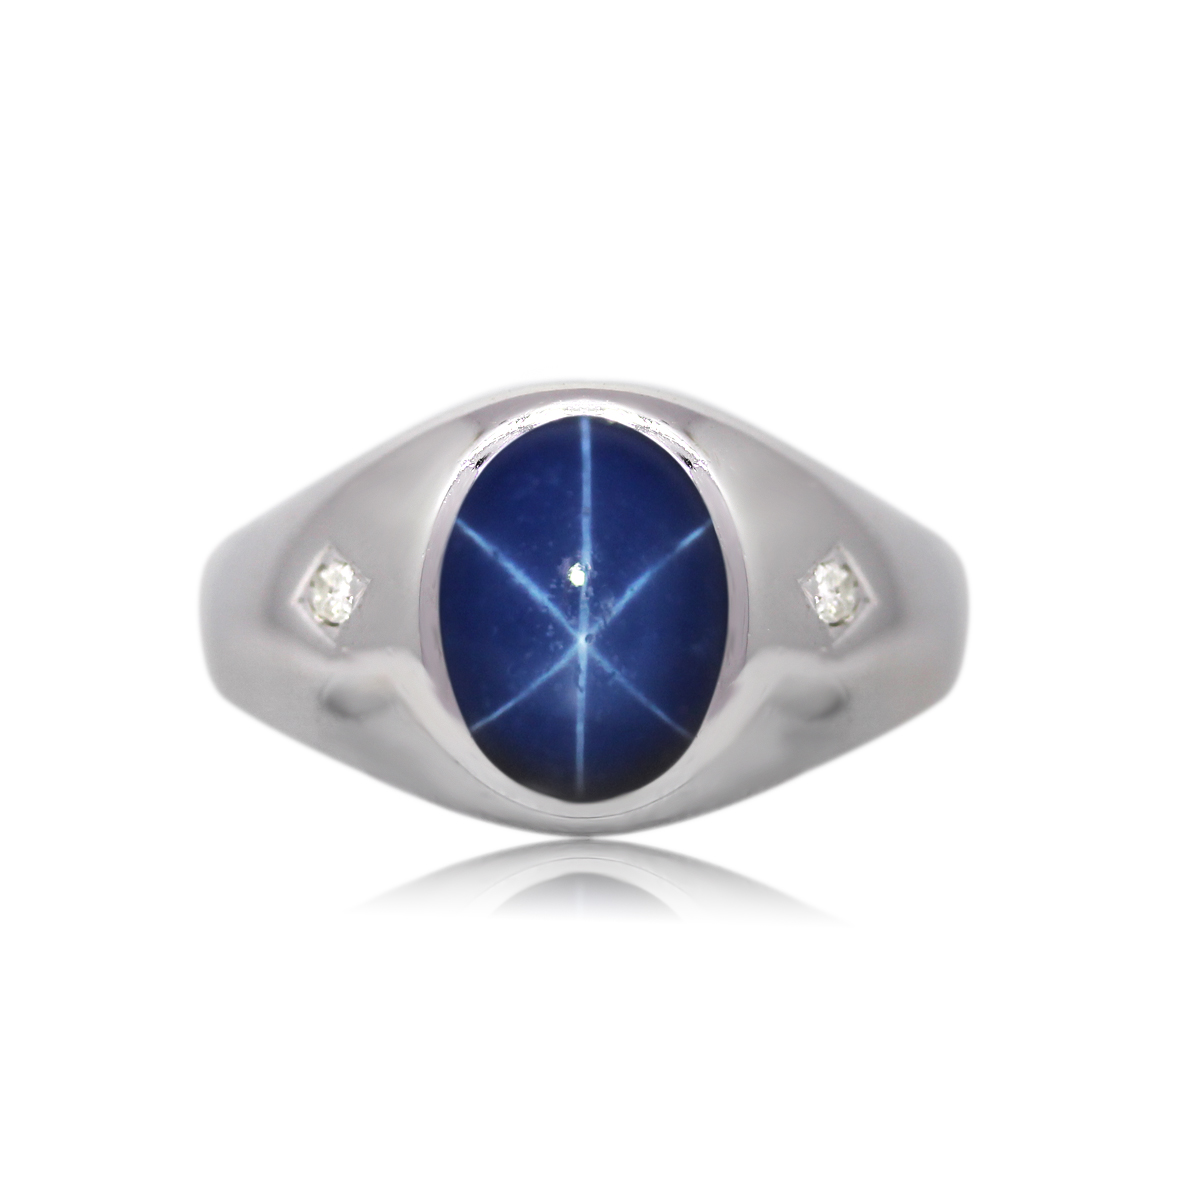 You are Viewing this Diamond Star Sapphire Ring